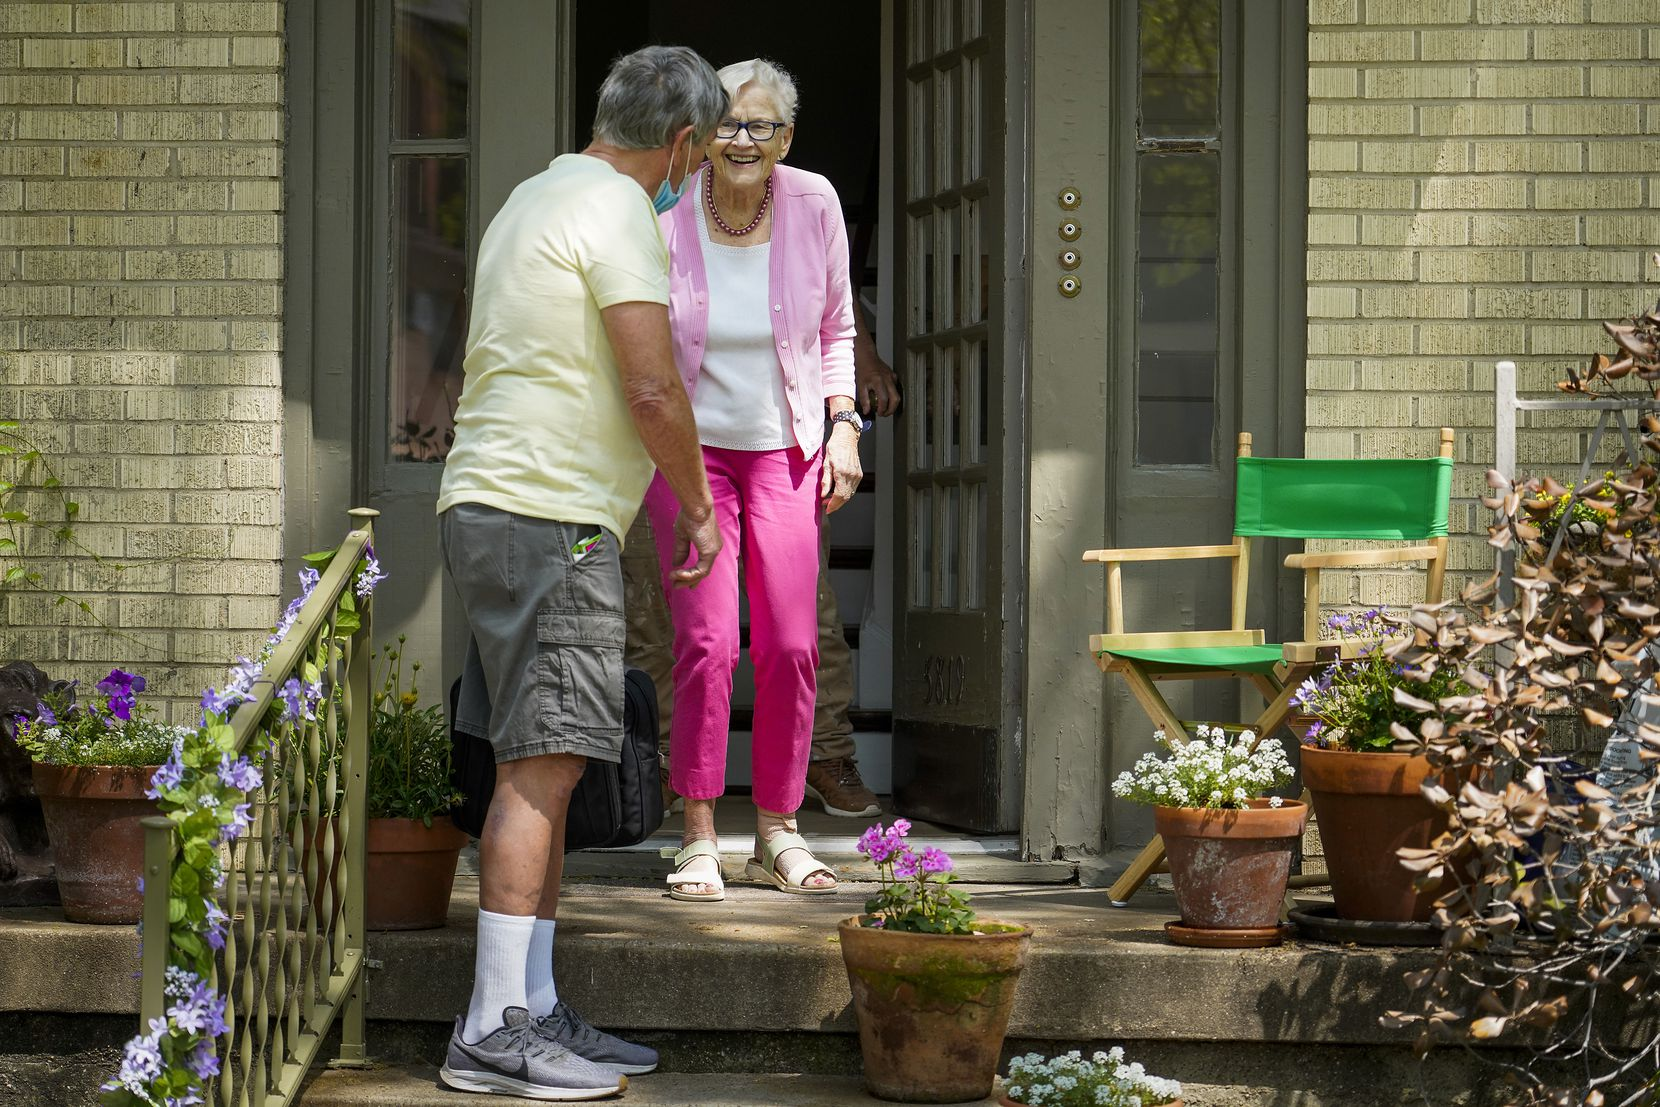 Vic Colon greets neighbor Jane Barker on her porch.